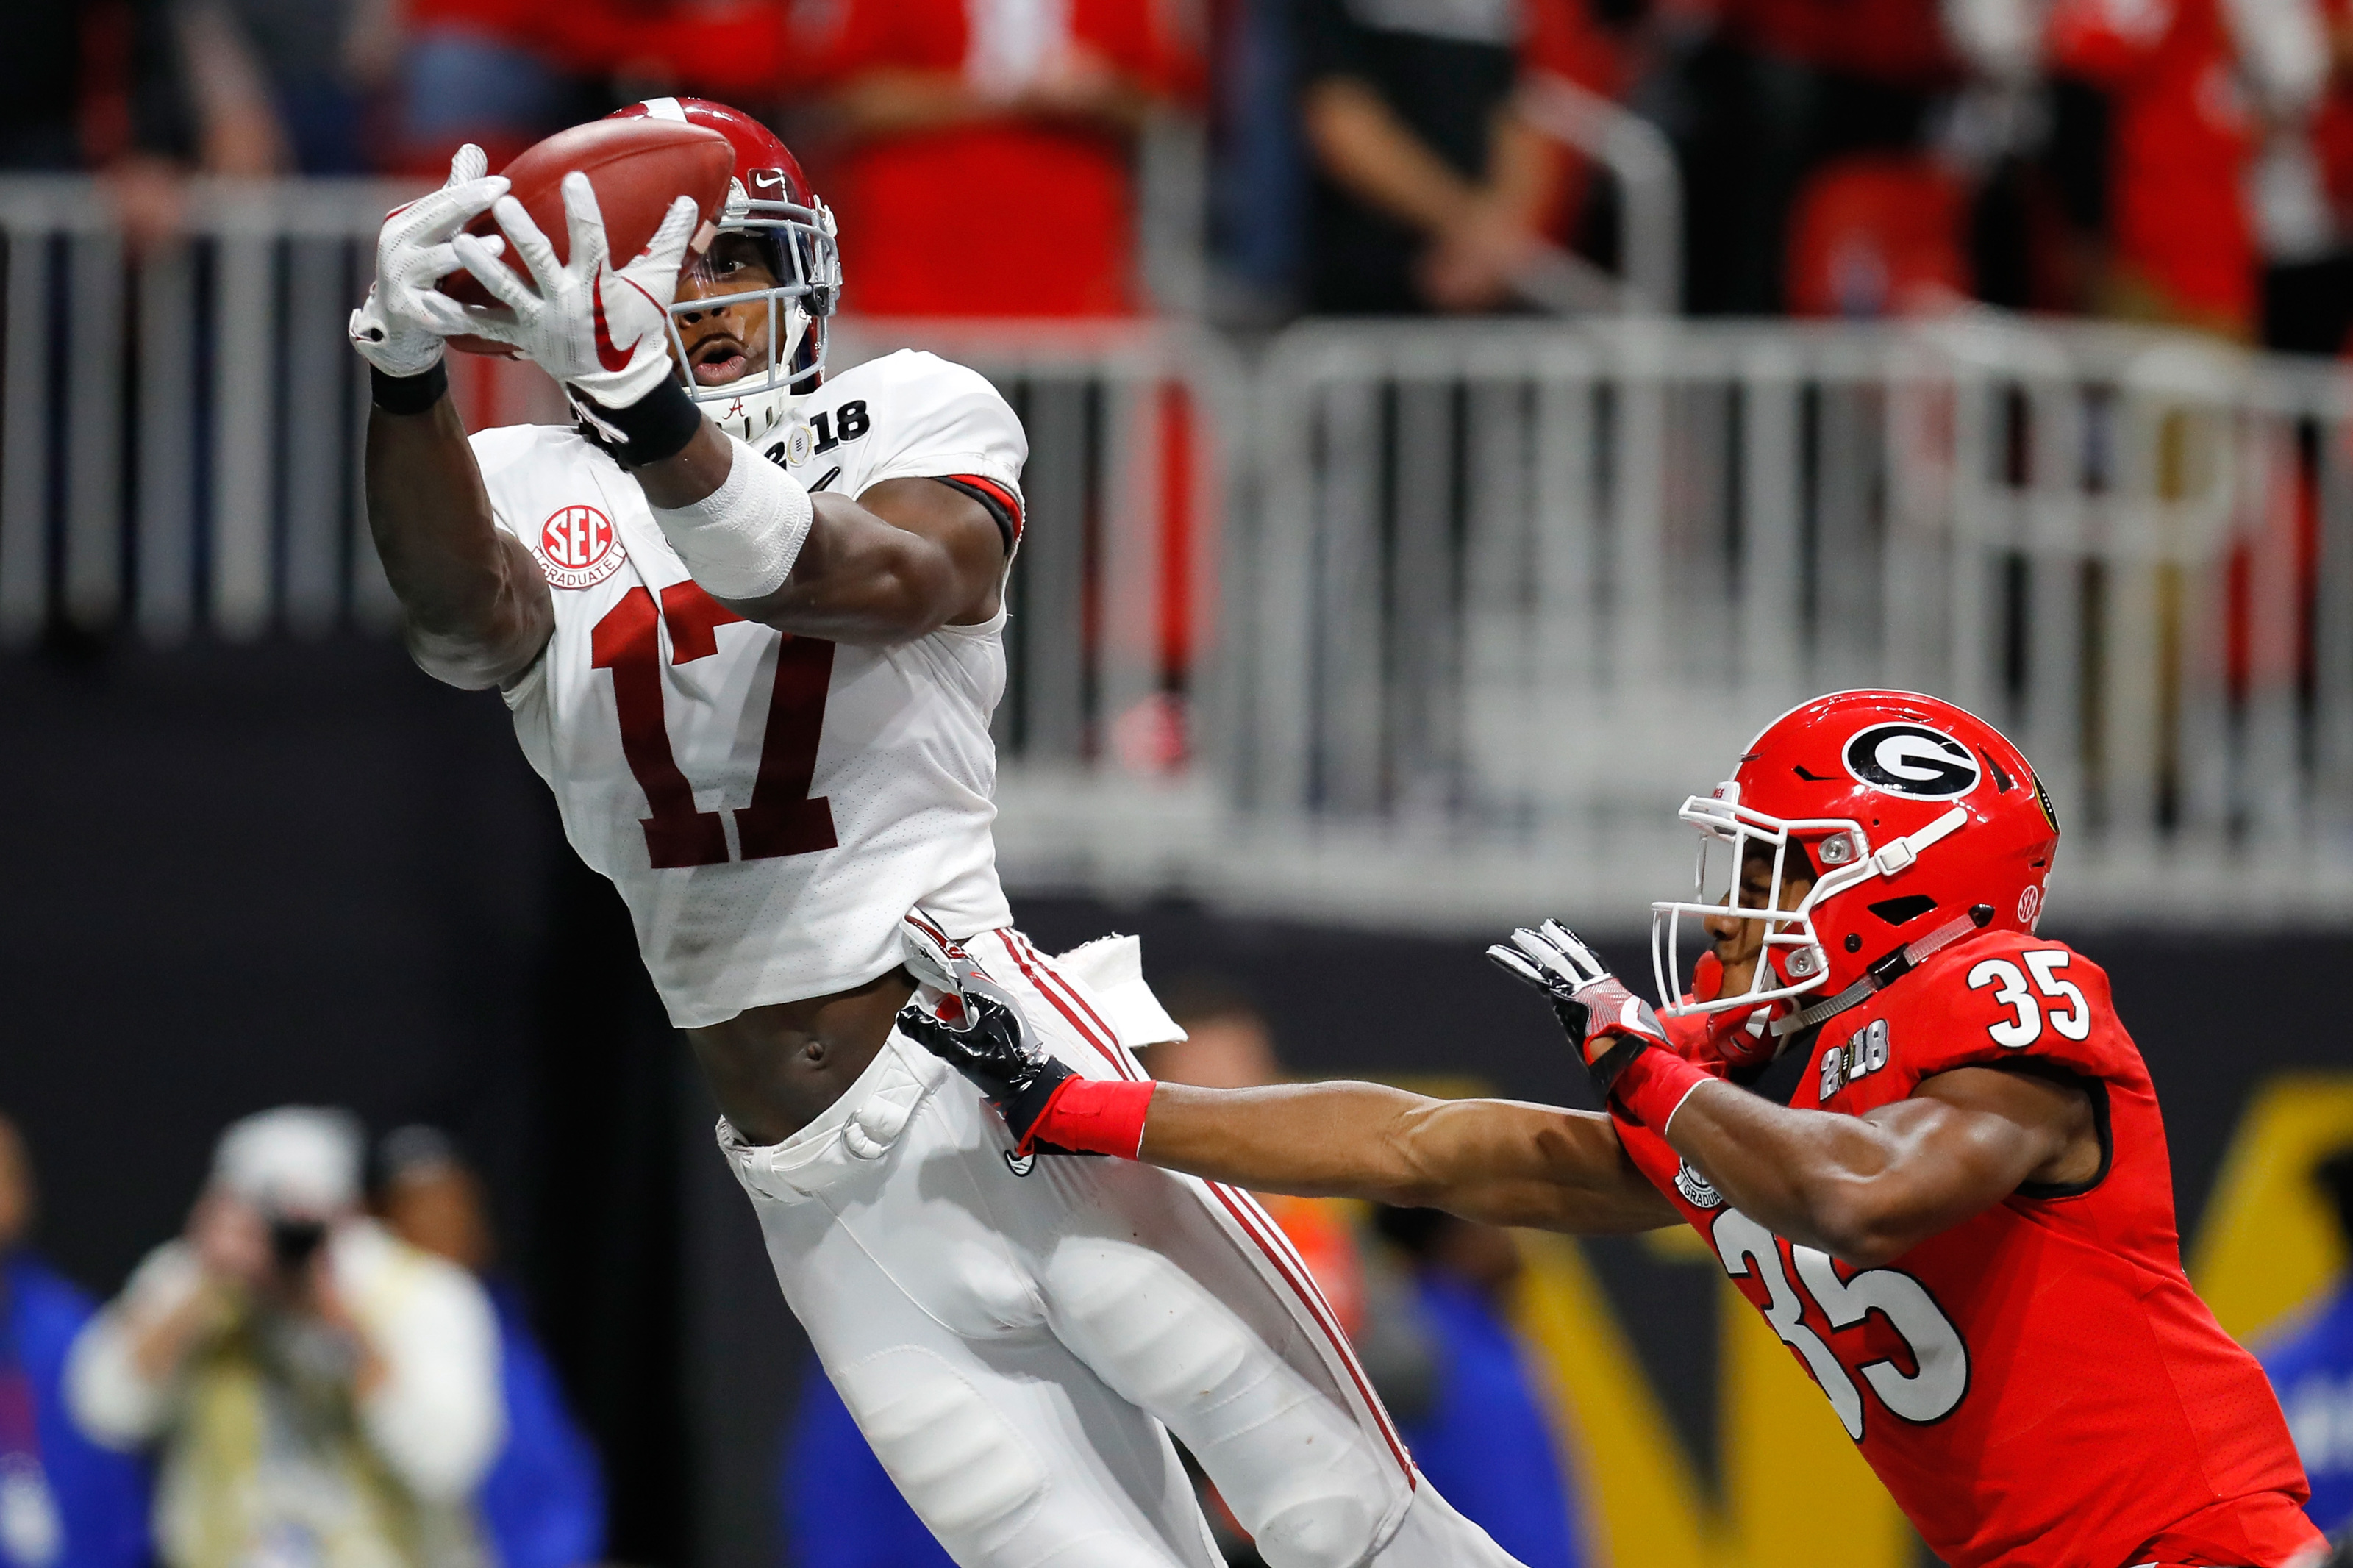 Redskins UDFA: WR Cam Sims has the size to be red zone threat - Page 3